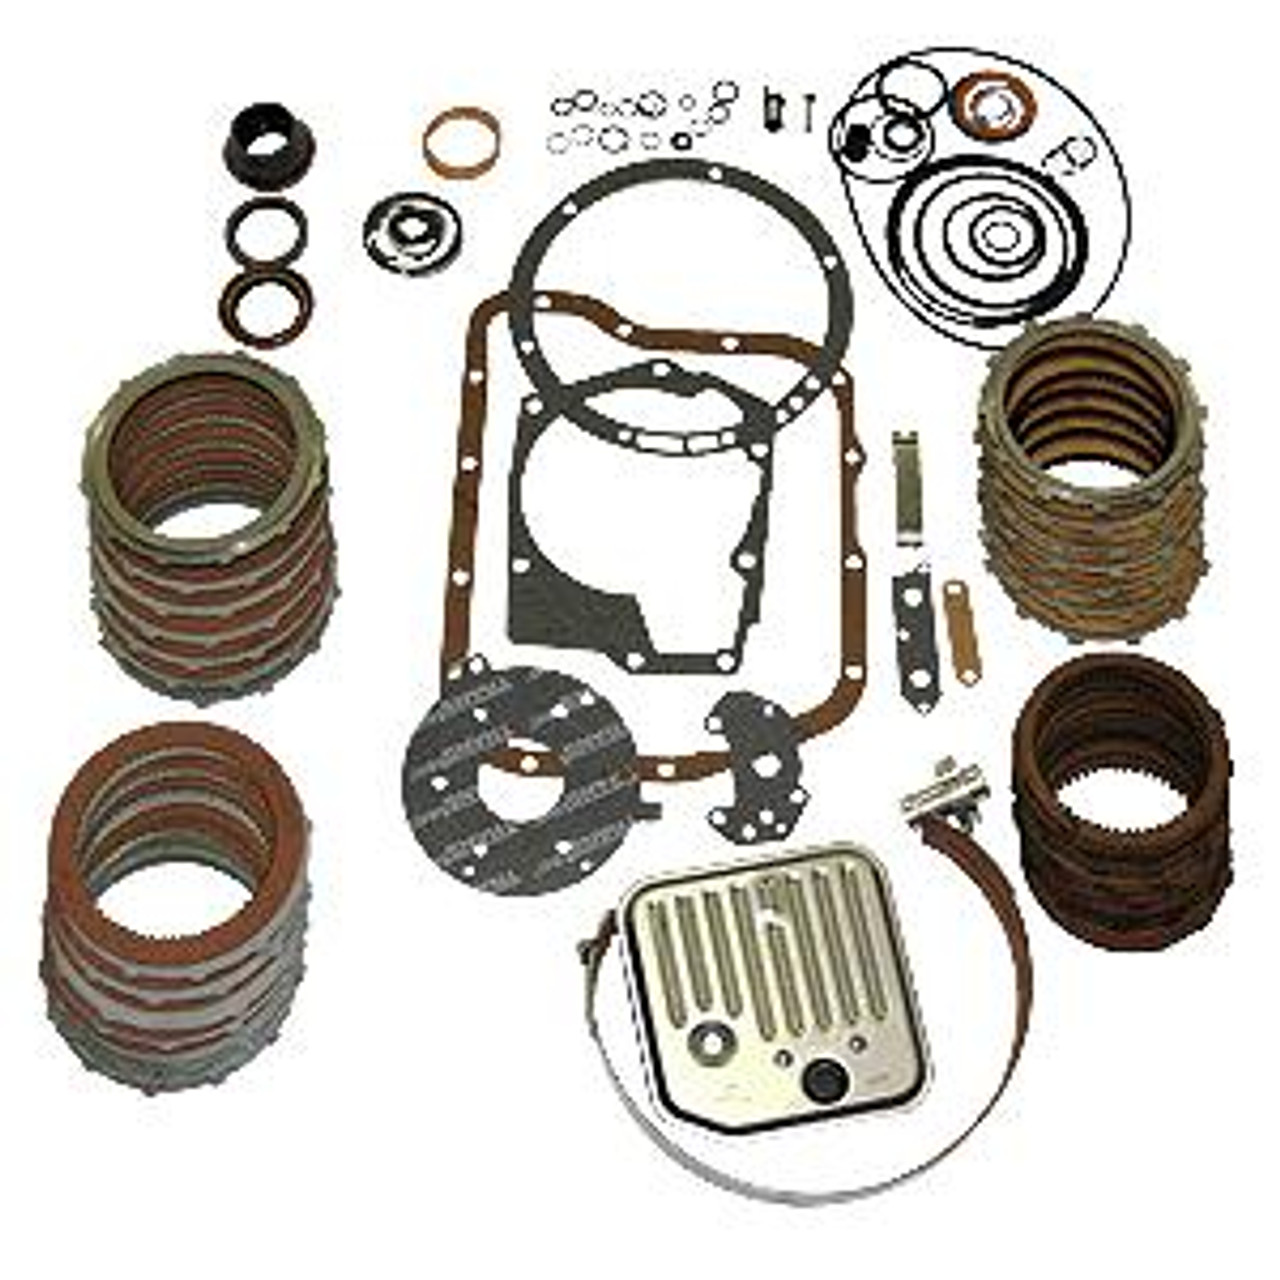 ATS Diesel 2001-2005 ATS LCT-1000 5 speed Paper & Rubber kit